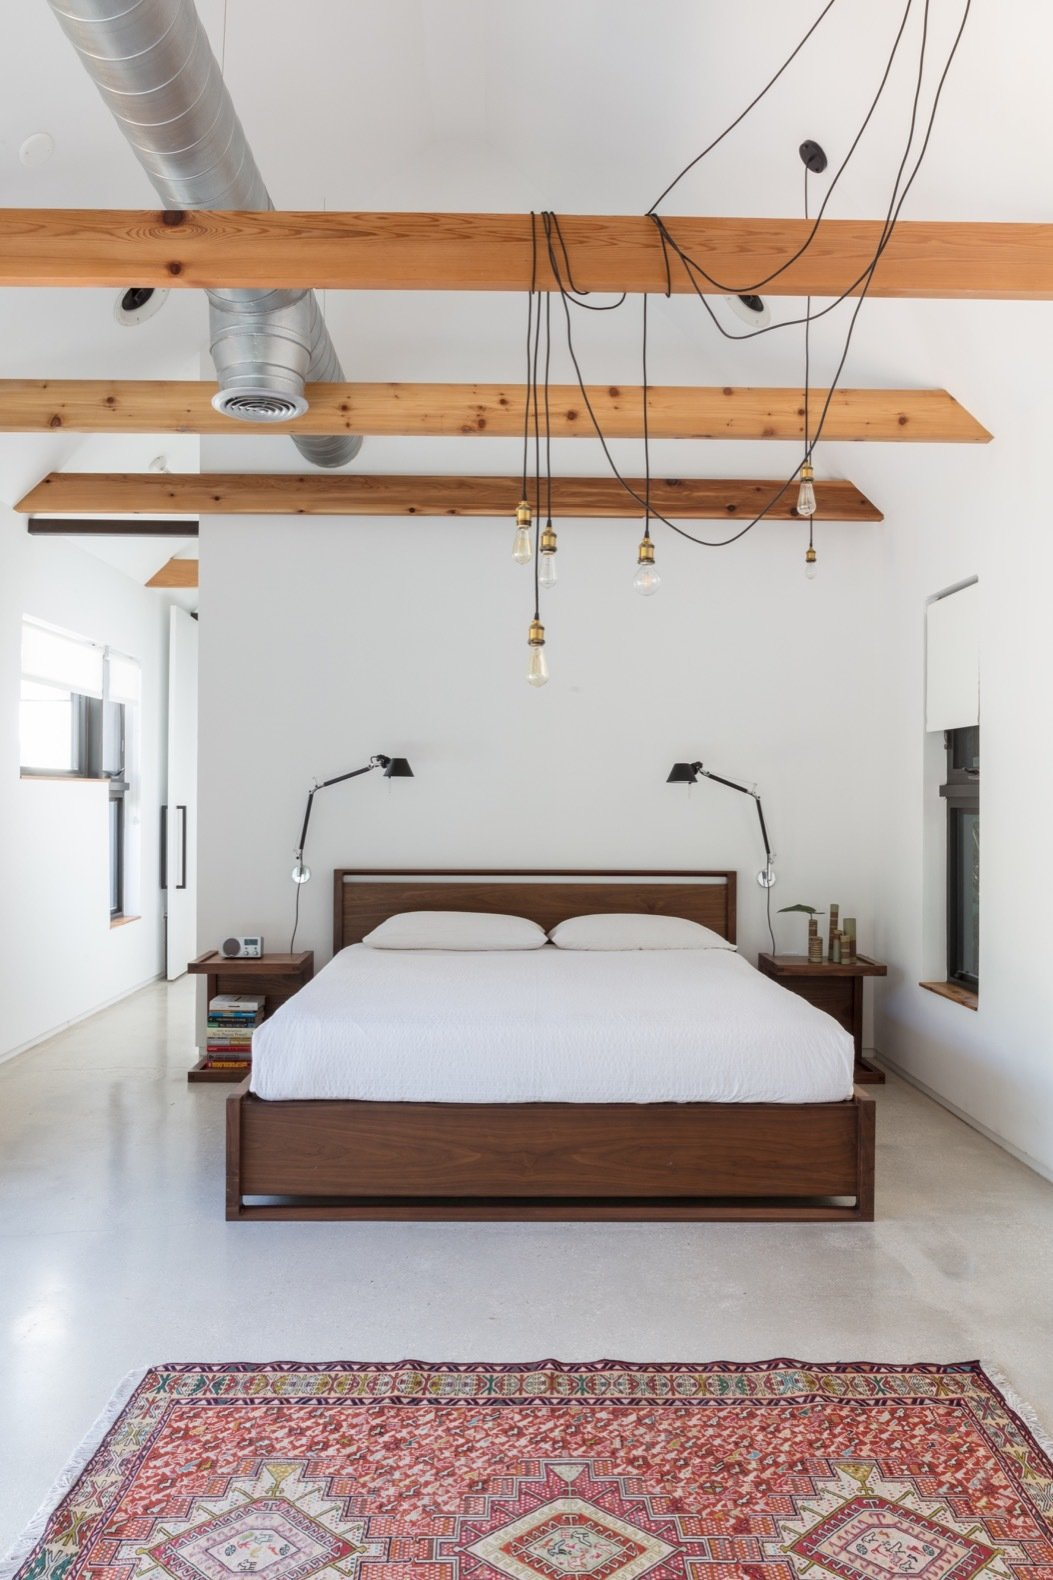 bedroom with wall sconce on each side of bed and 6 center ceiling pendant light bulbs hung with long stringy cords